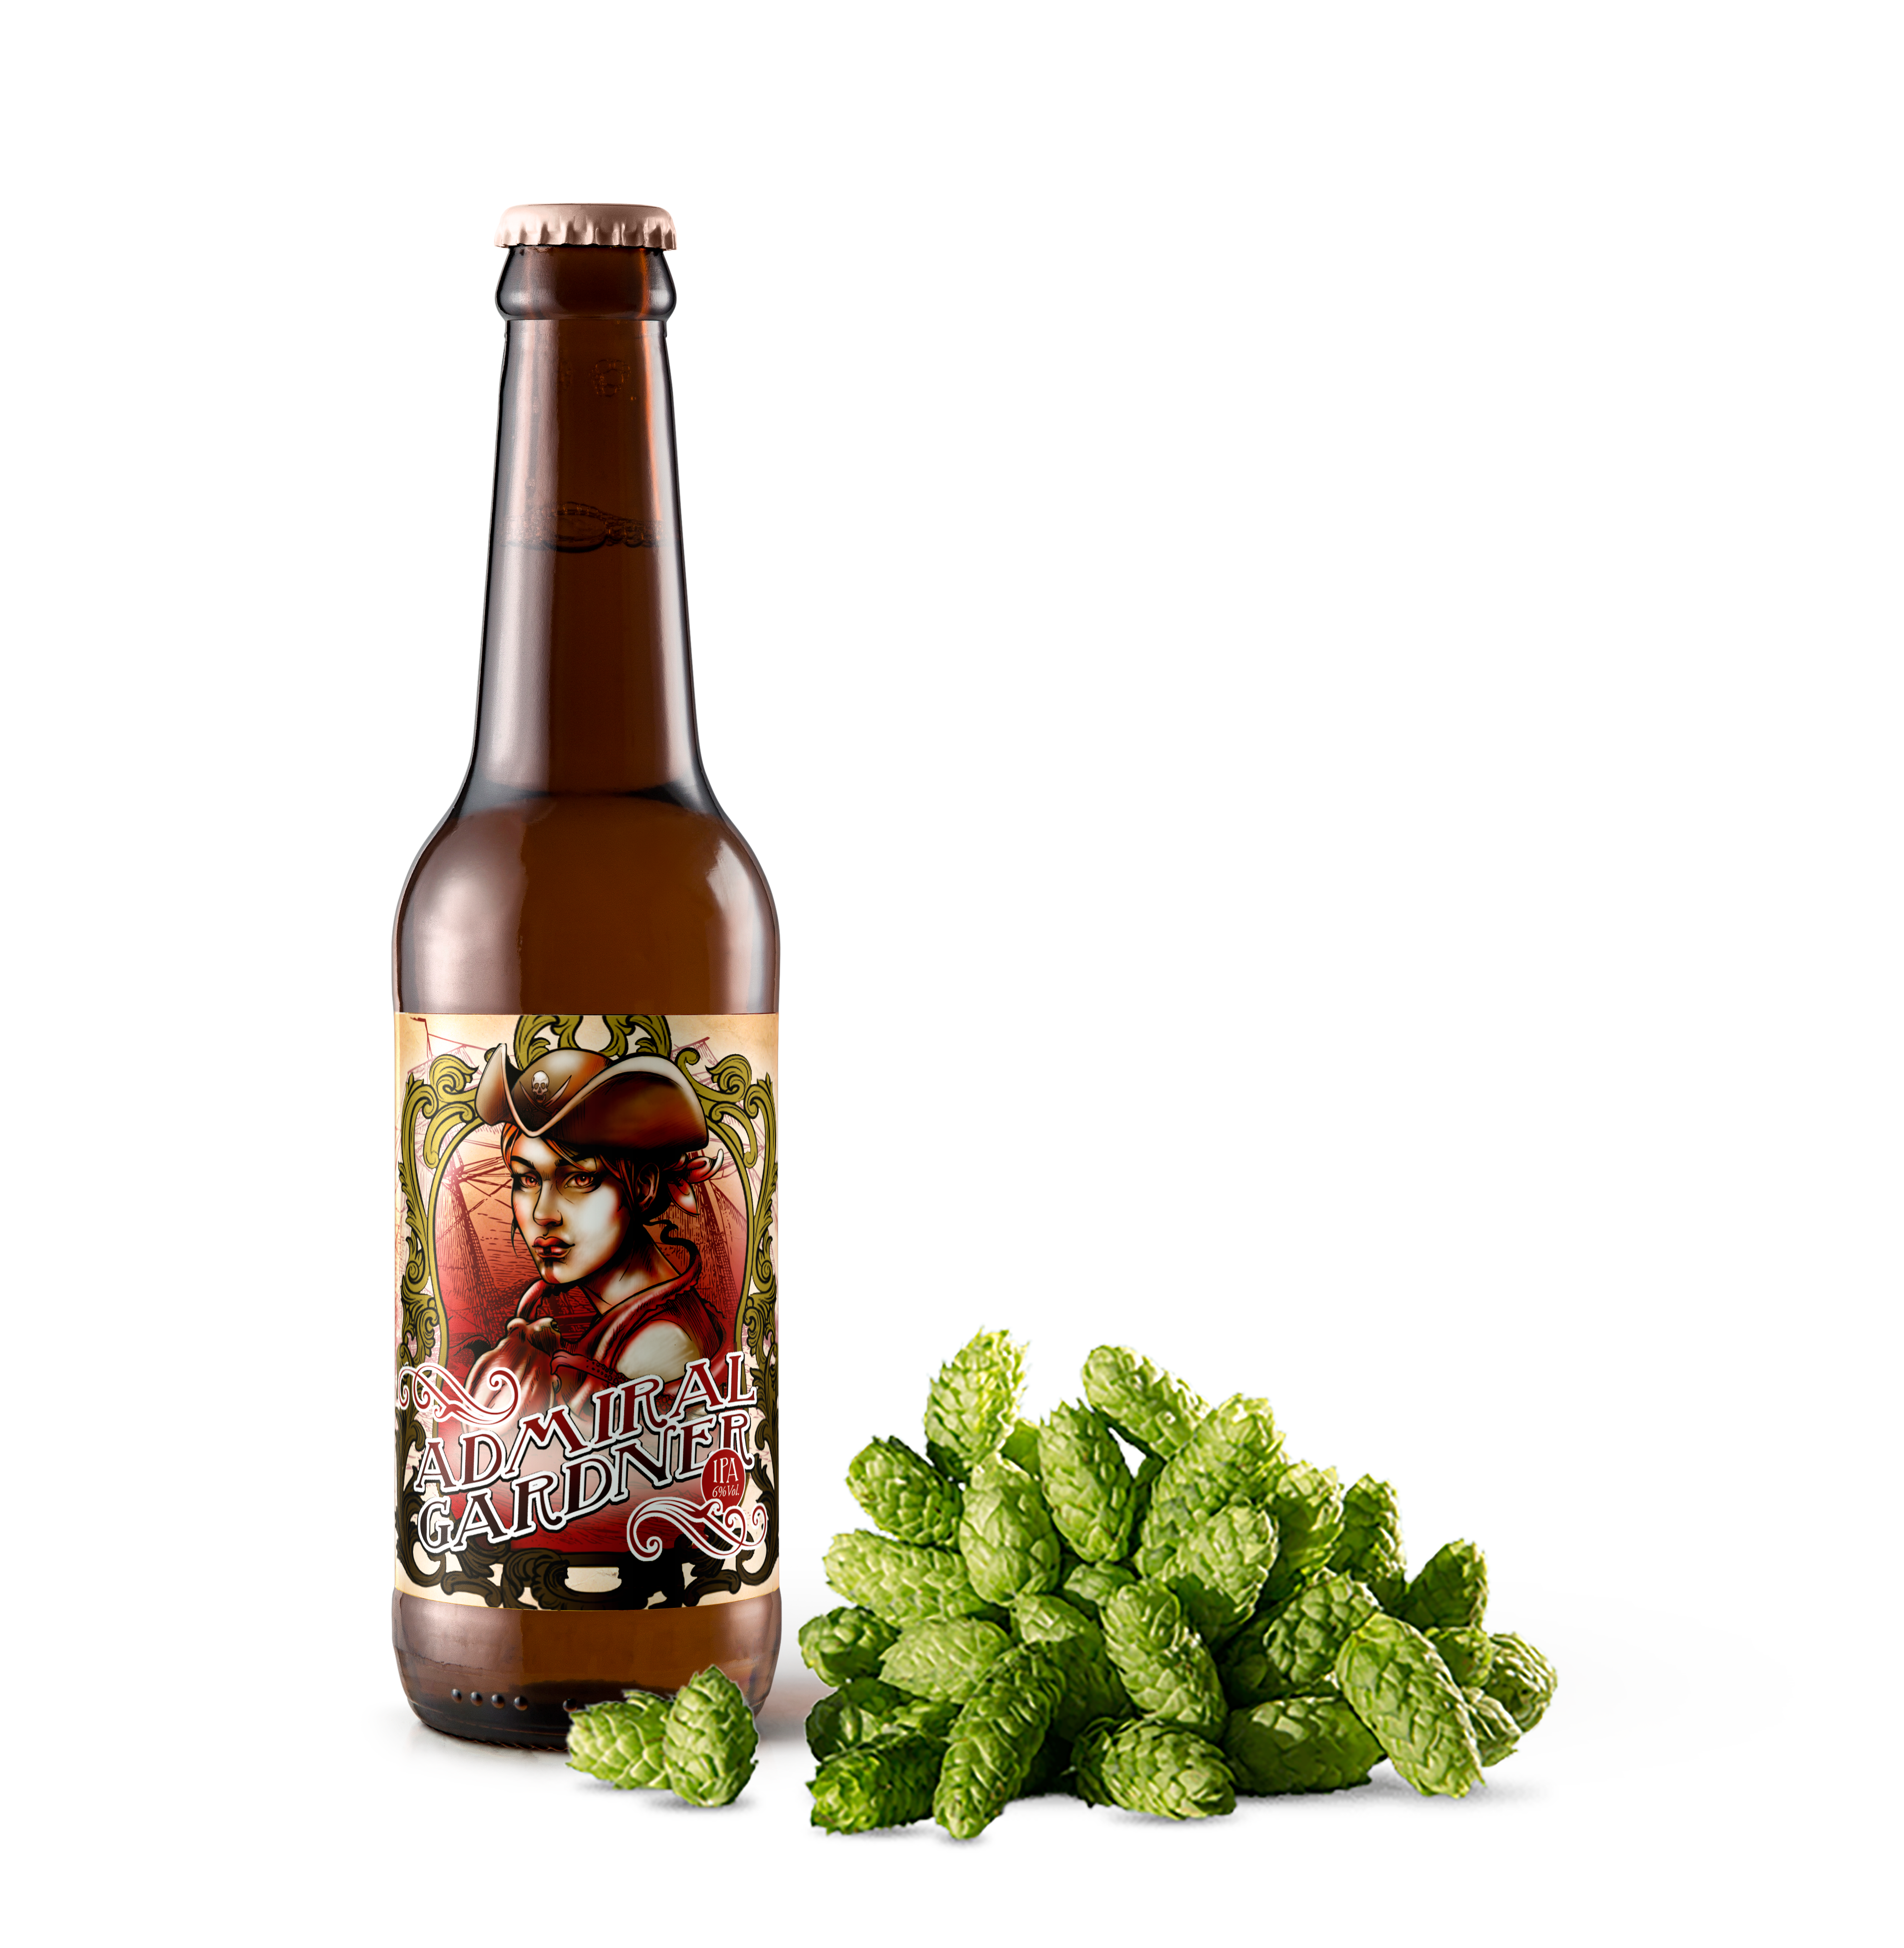 https://brewlab.be/wp-content/uploads/2021/02/IPA-Mockup_A_G.png